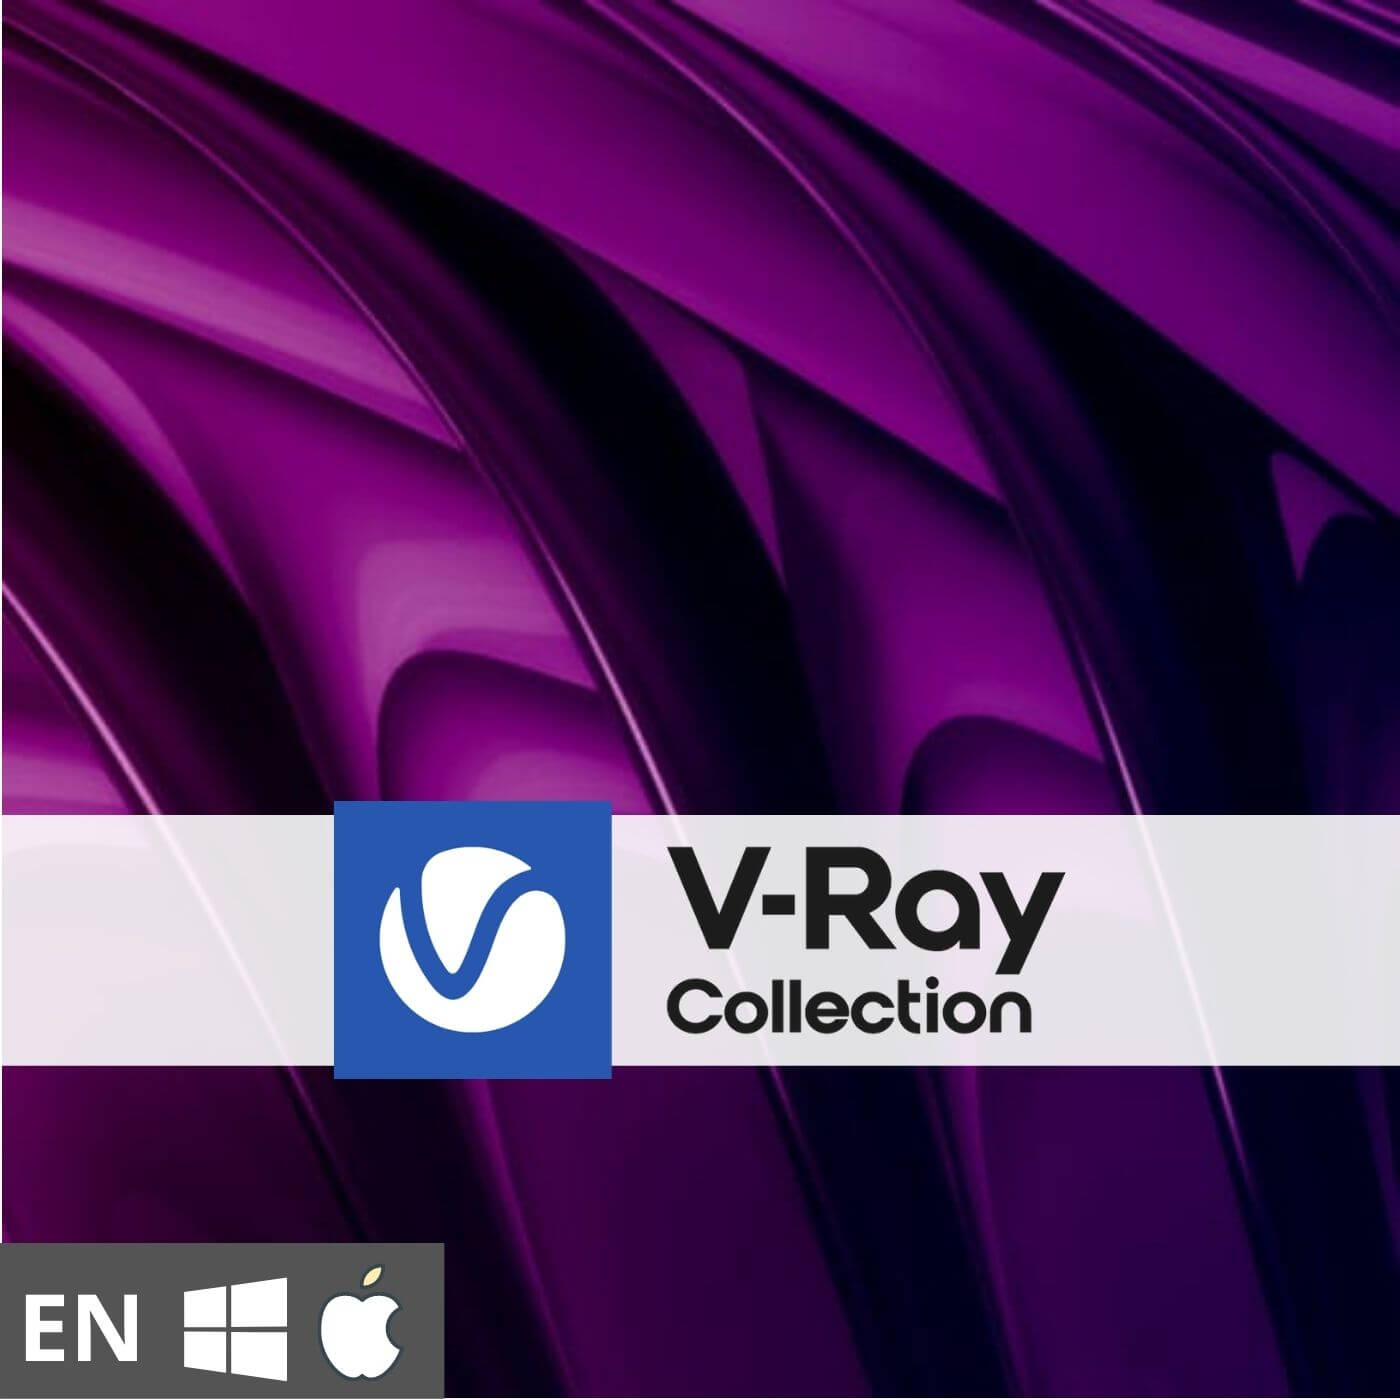 V-Ray Collection – 1 rok